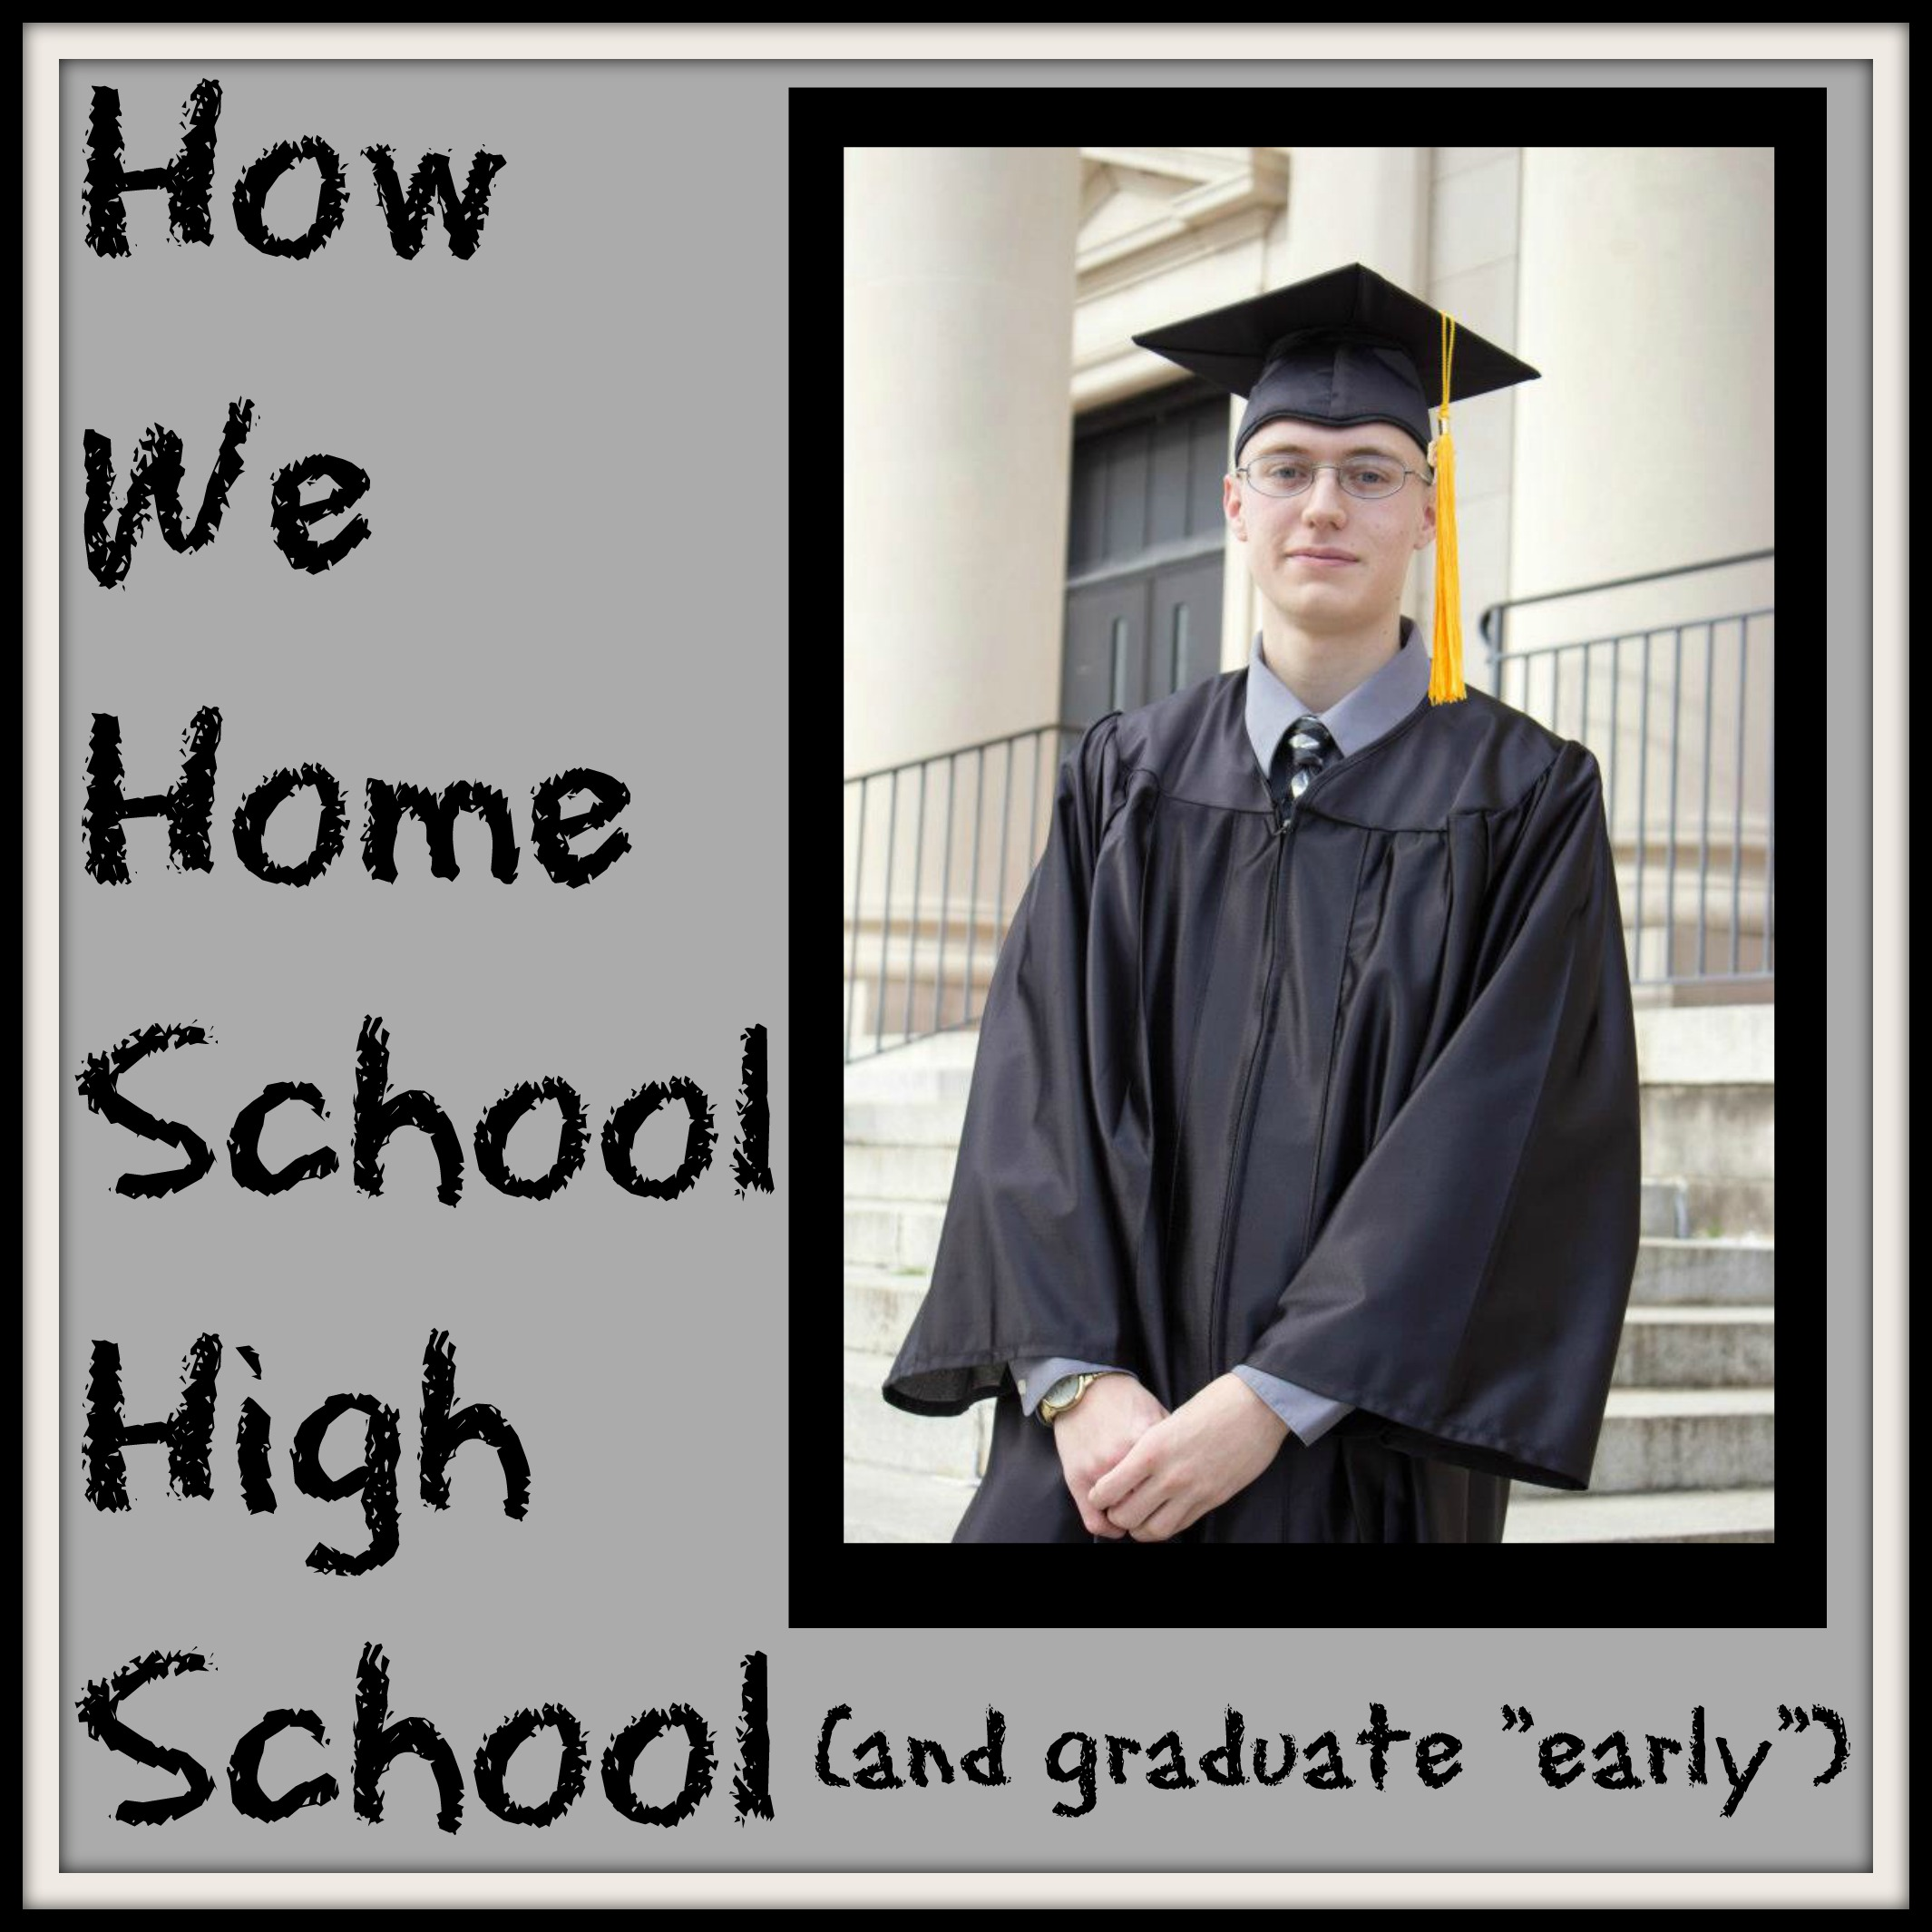 early graduation essays Create a captivating, thoughtful, and well-written grad school personal statement or statement of purpose check out grad school essay writing 101.